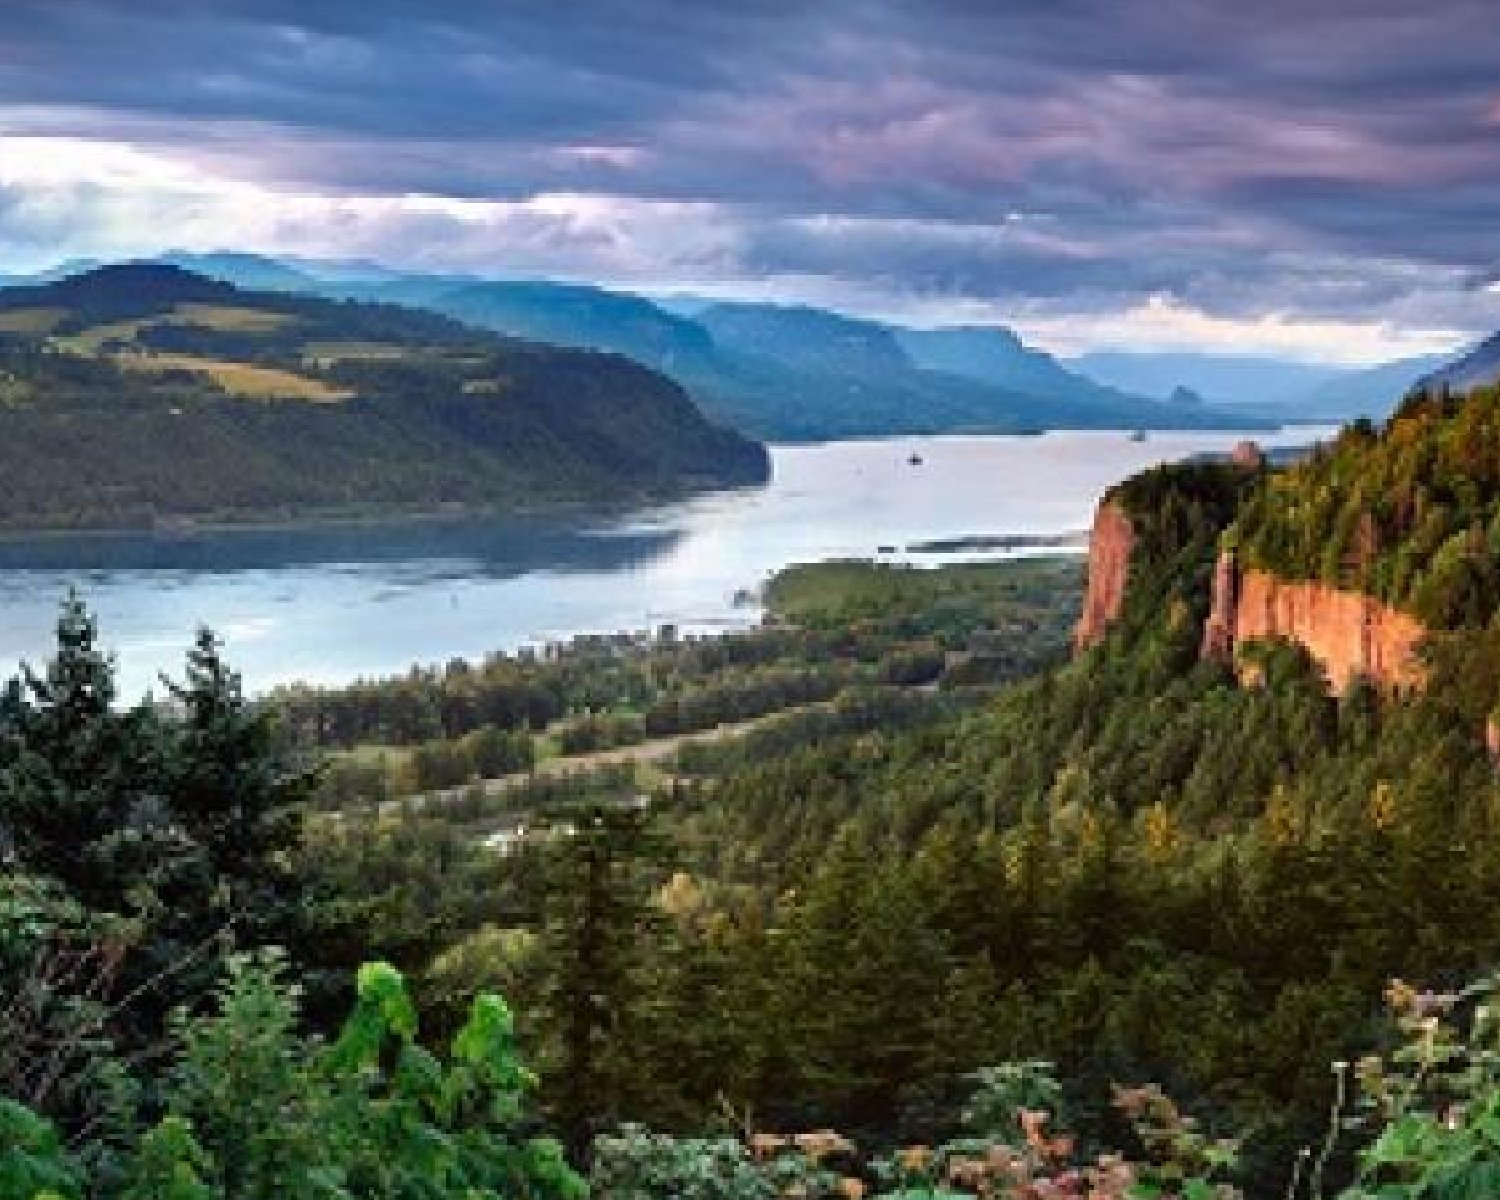 Virtual OMSI Science Pub: Geology of the Columbia Gorge Oregon